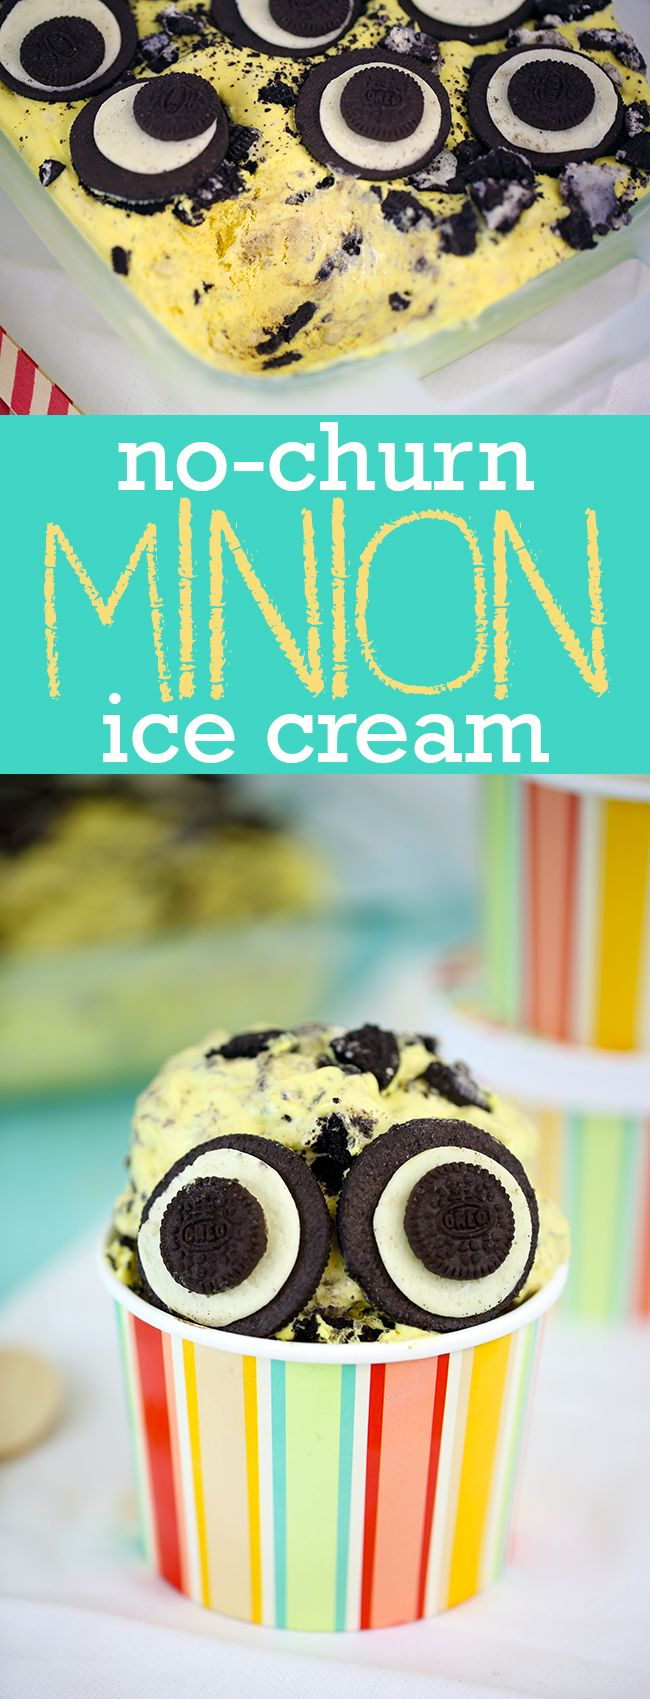 No Churn Minion Ice Cream recipe. Delicious kid friendly ice cream loaded with bananas of course... and Oreo cookies. Perfect for Despicable Me themed parties this summer.